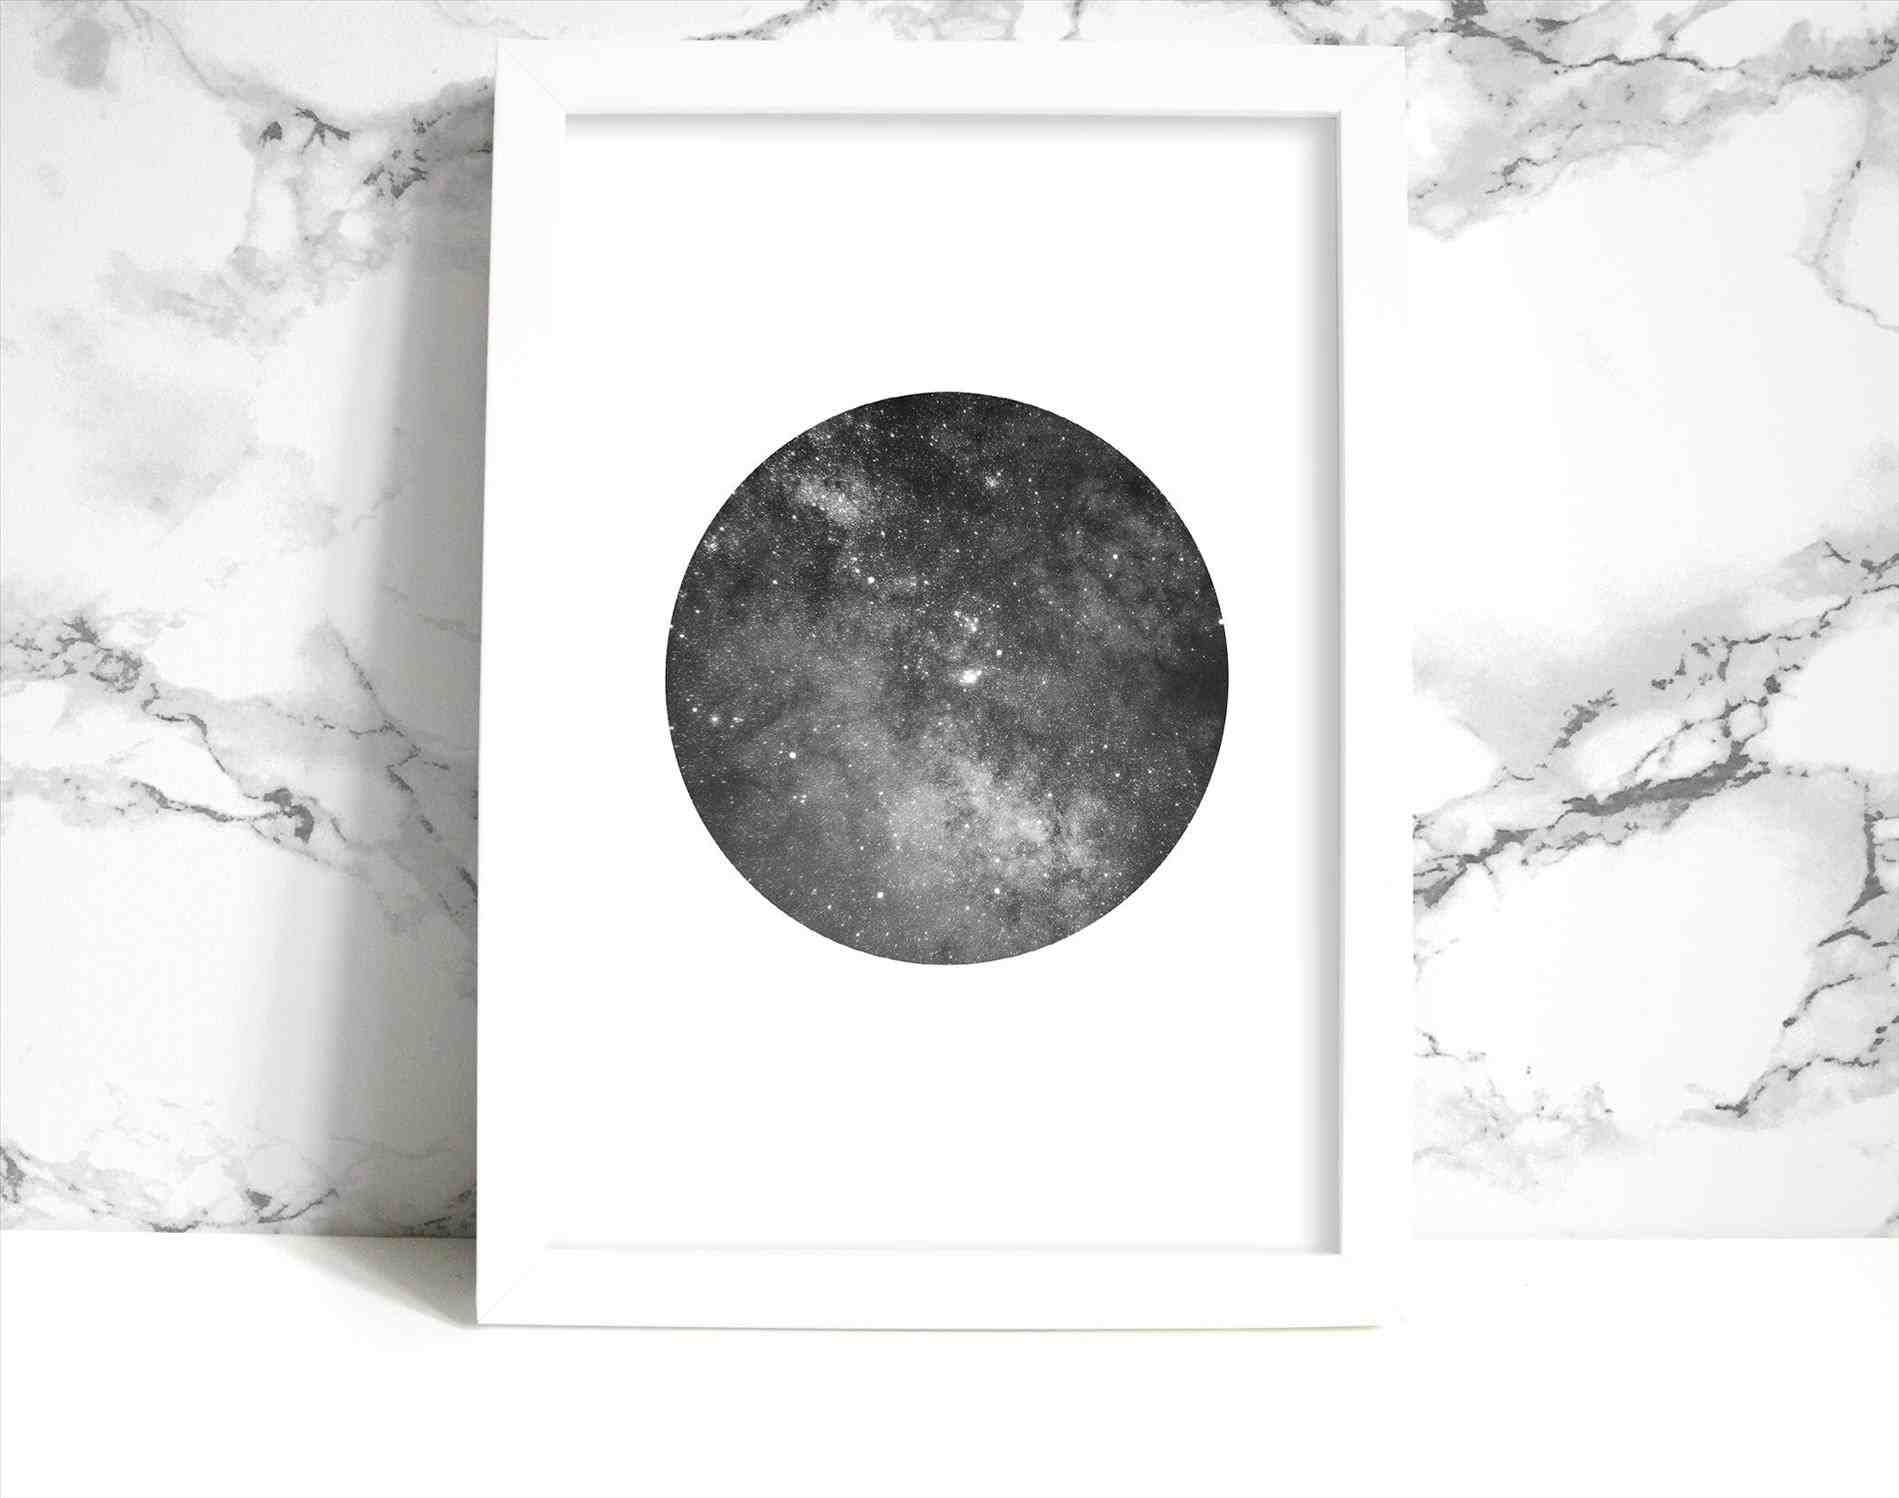 Tumblr Wall Art Black And White   Wall Painting Ideas Within Tumblr Wall Art (View 19 of 20)